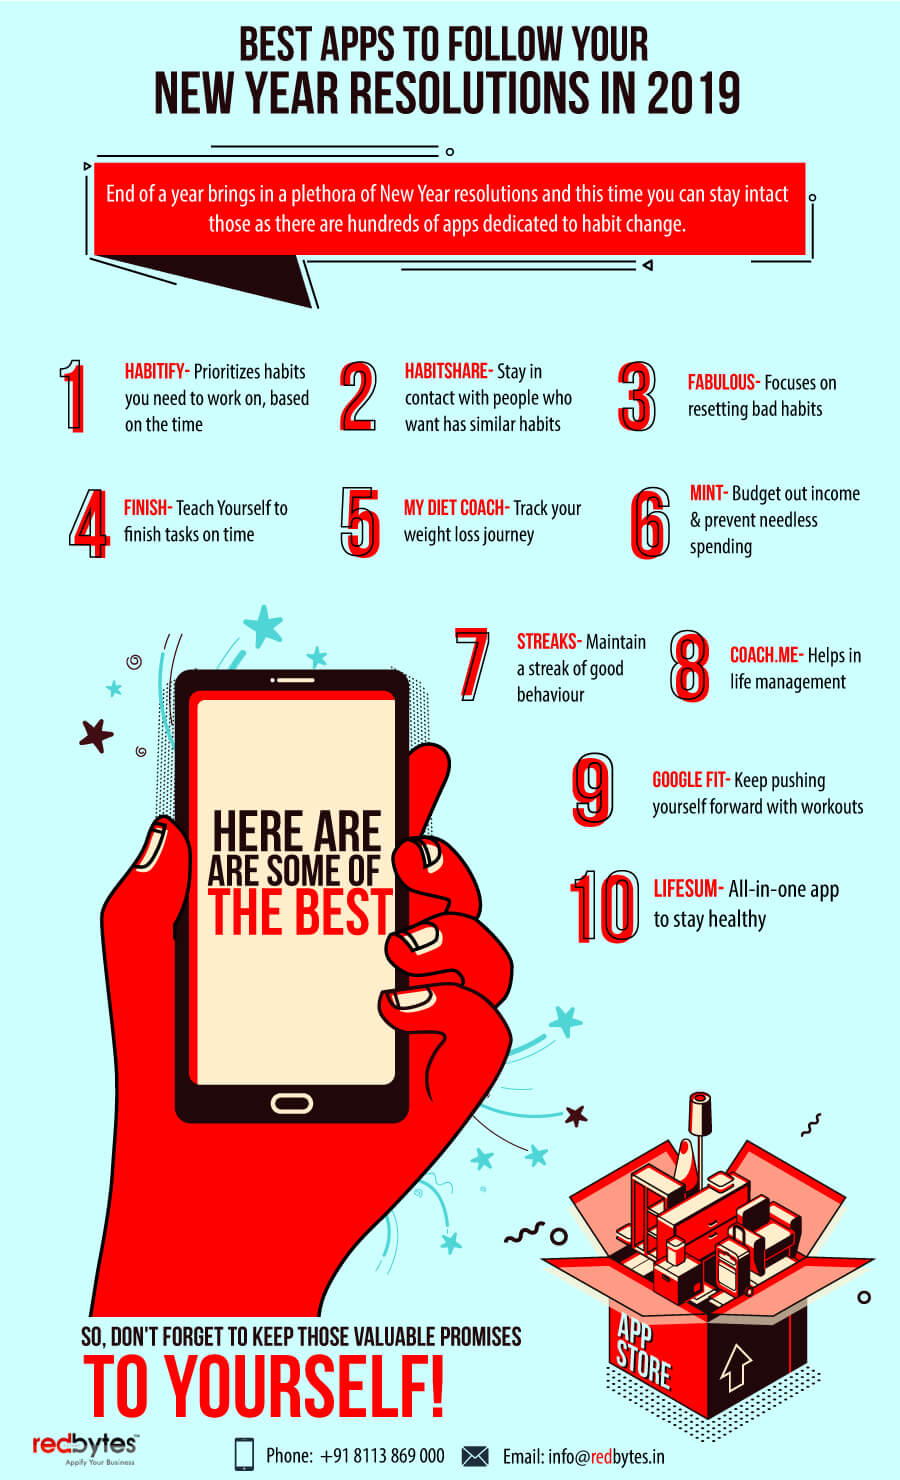 apps to follow new year resolution